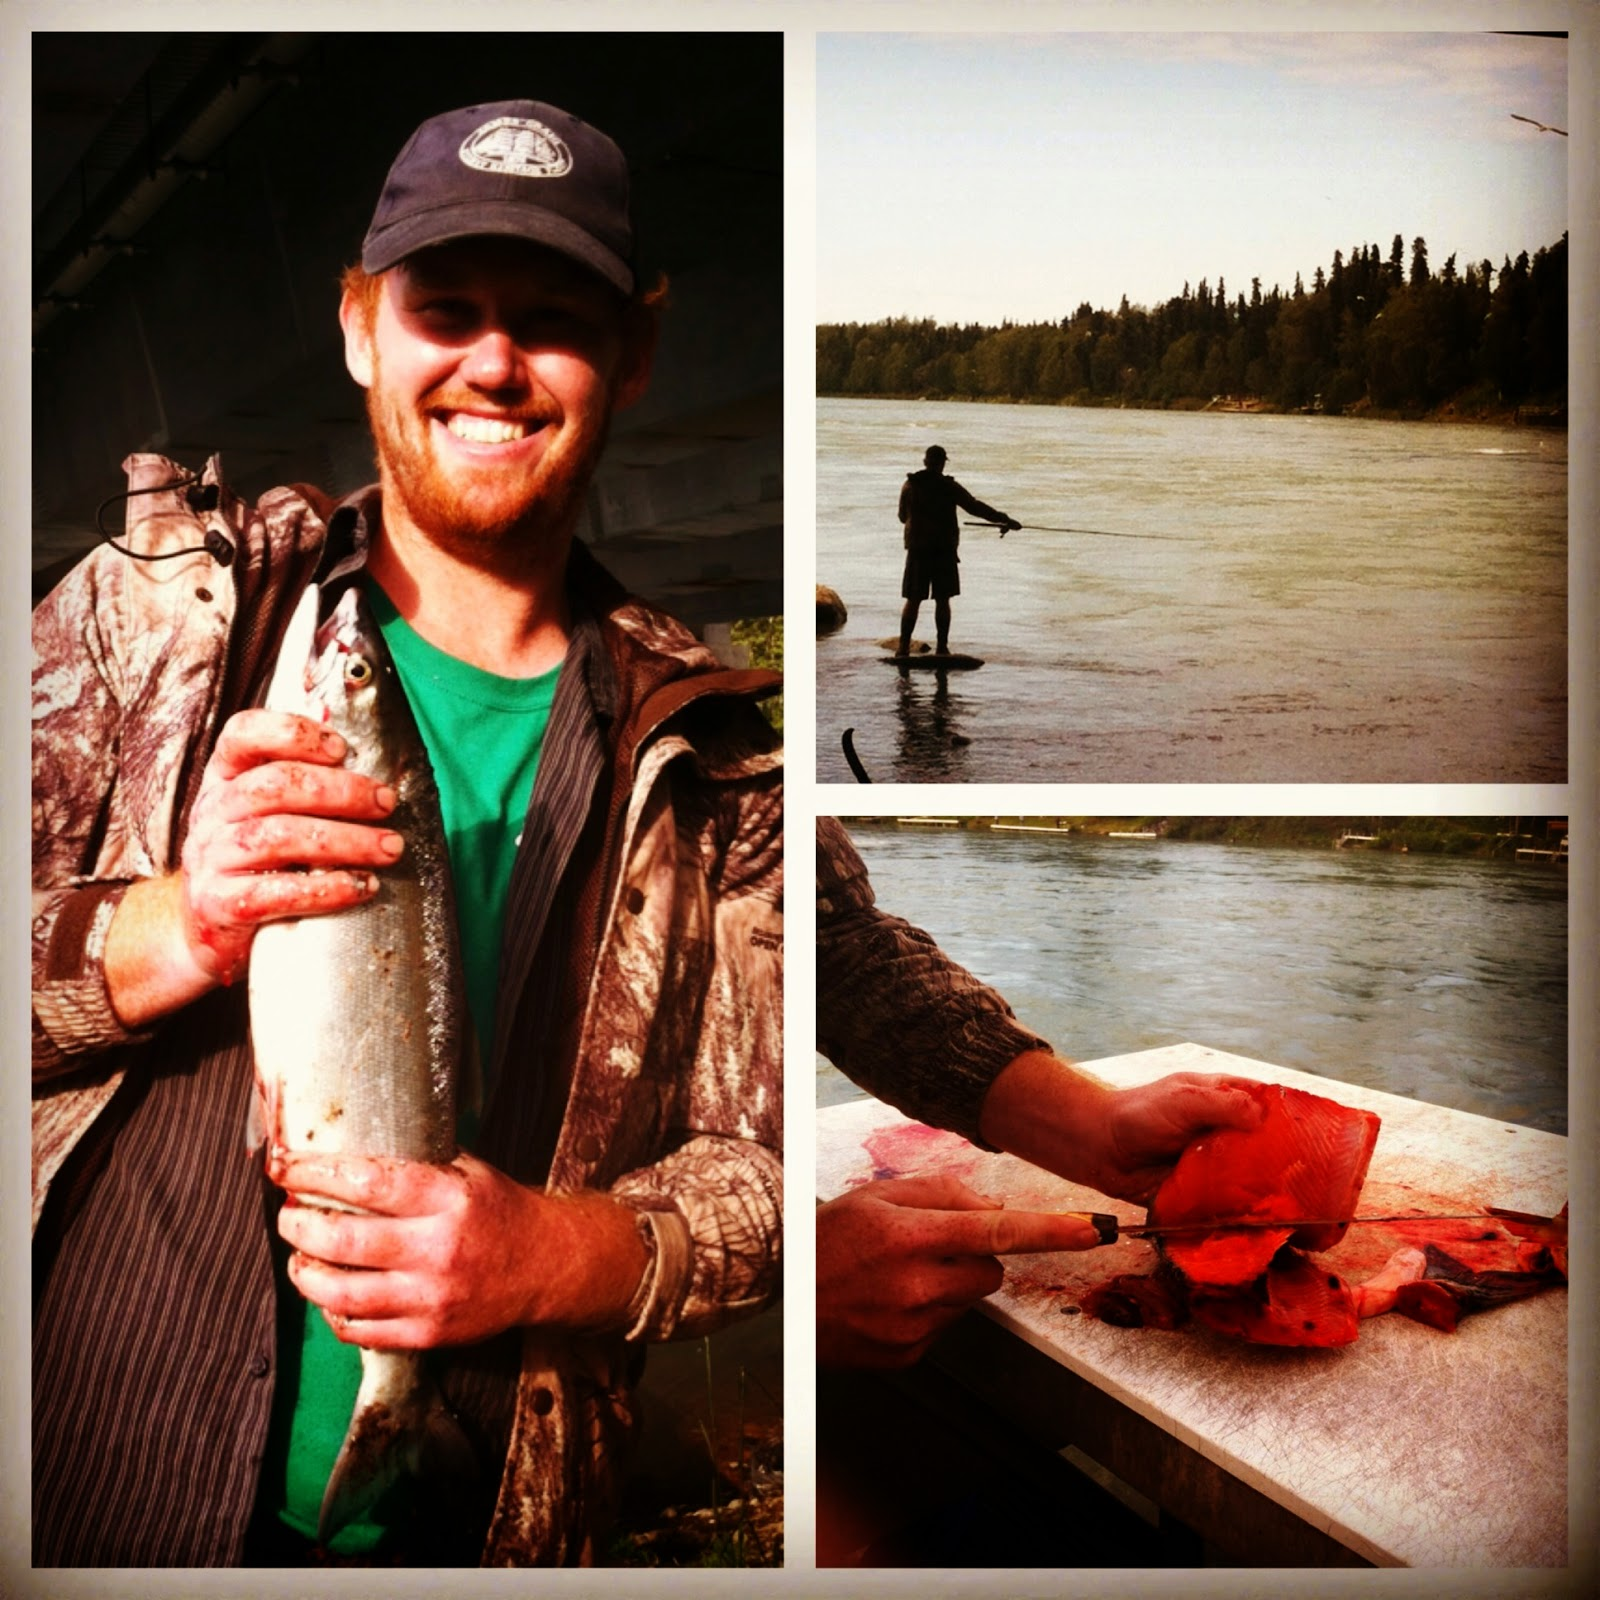 soldotna guys Soldotna chamber of commerce wwwadfgstateakus or call or visit the alaska department of fish and game office at 43961 kalifornsky beach road in soldotna.